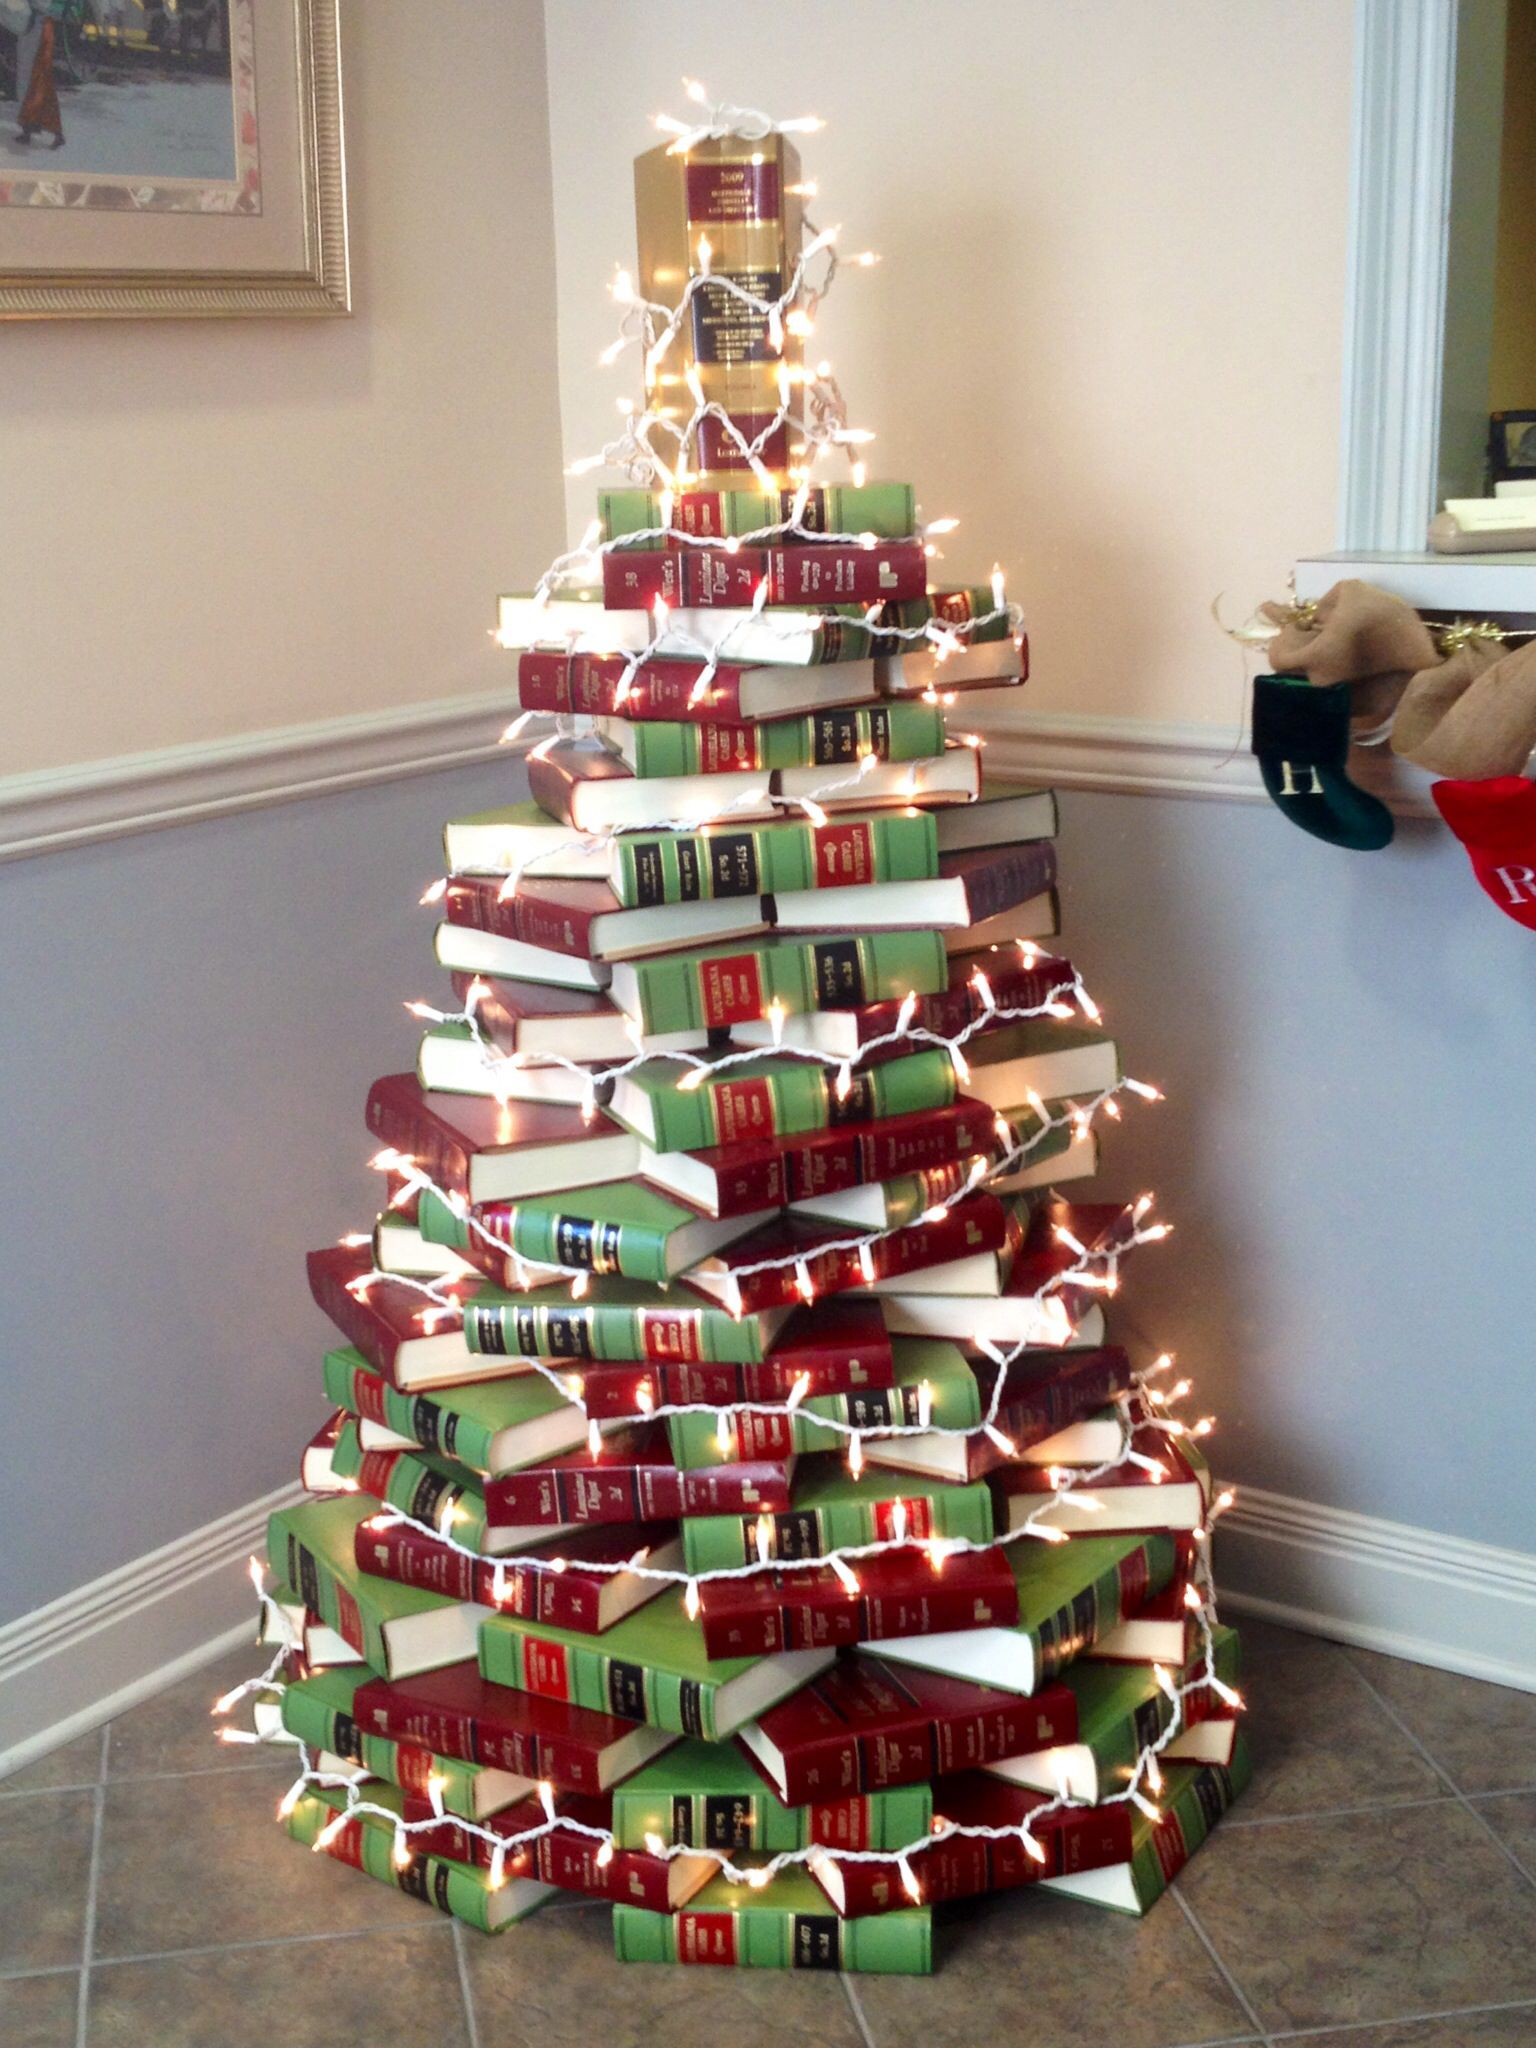 Our Law Office's Law Book Christmas Tree! Unique Tree